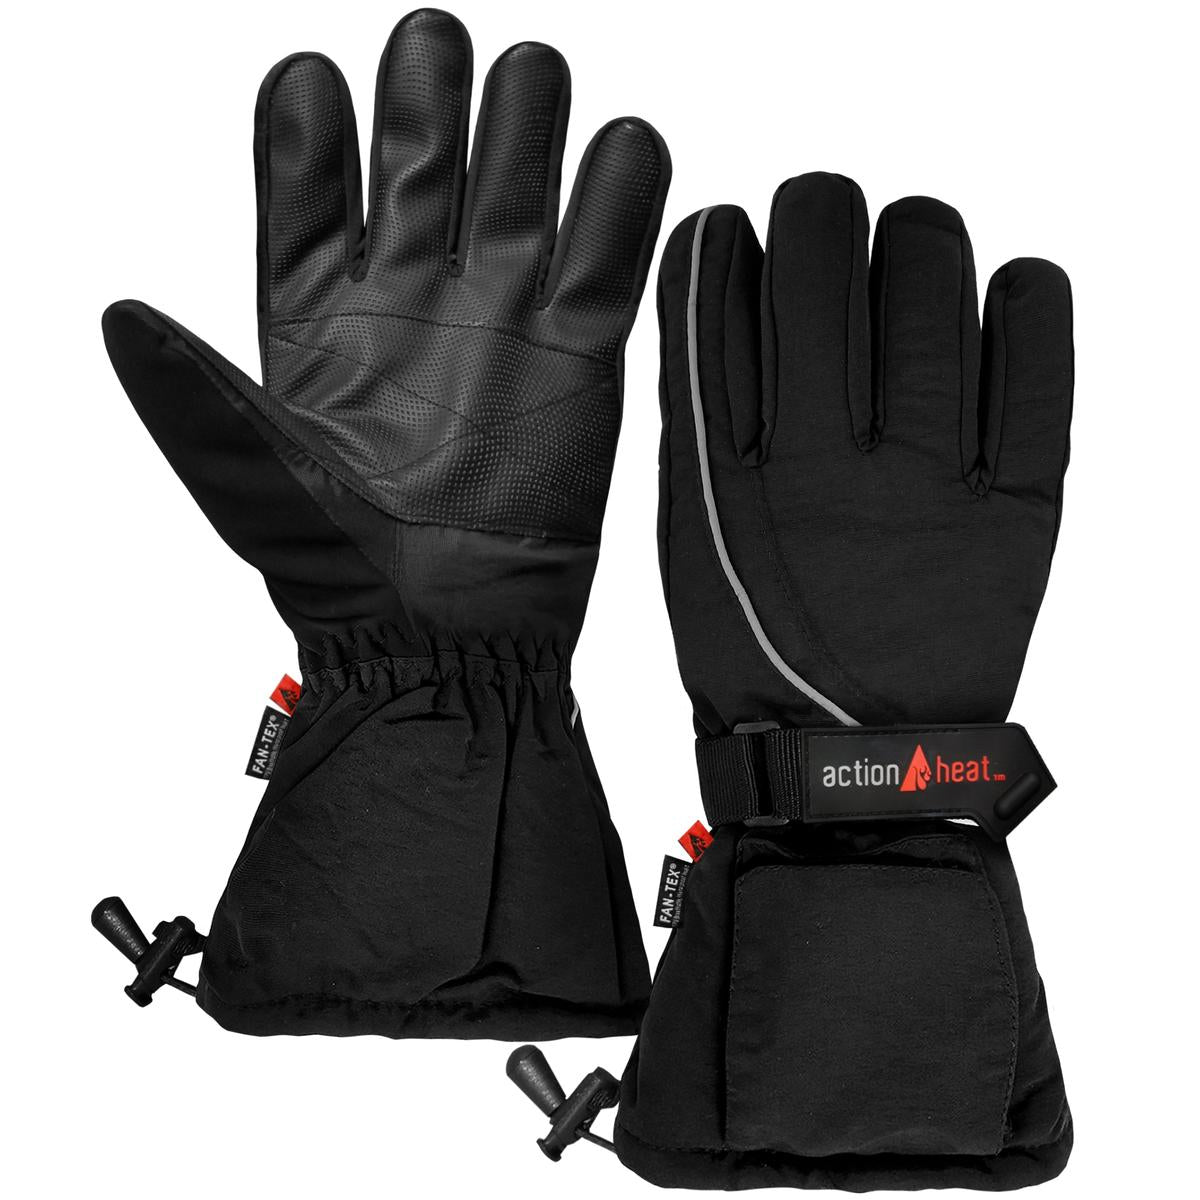 ActionHeat AA Battery Heated Gloves - Women's - Heated